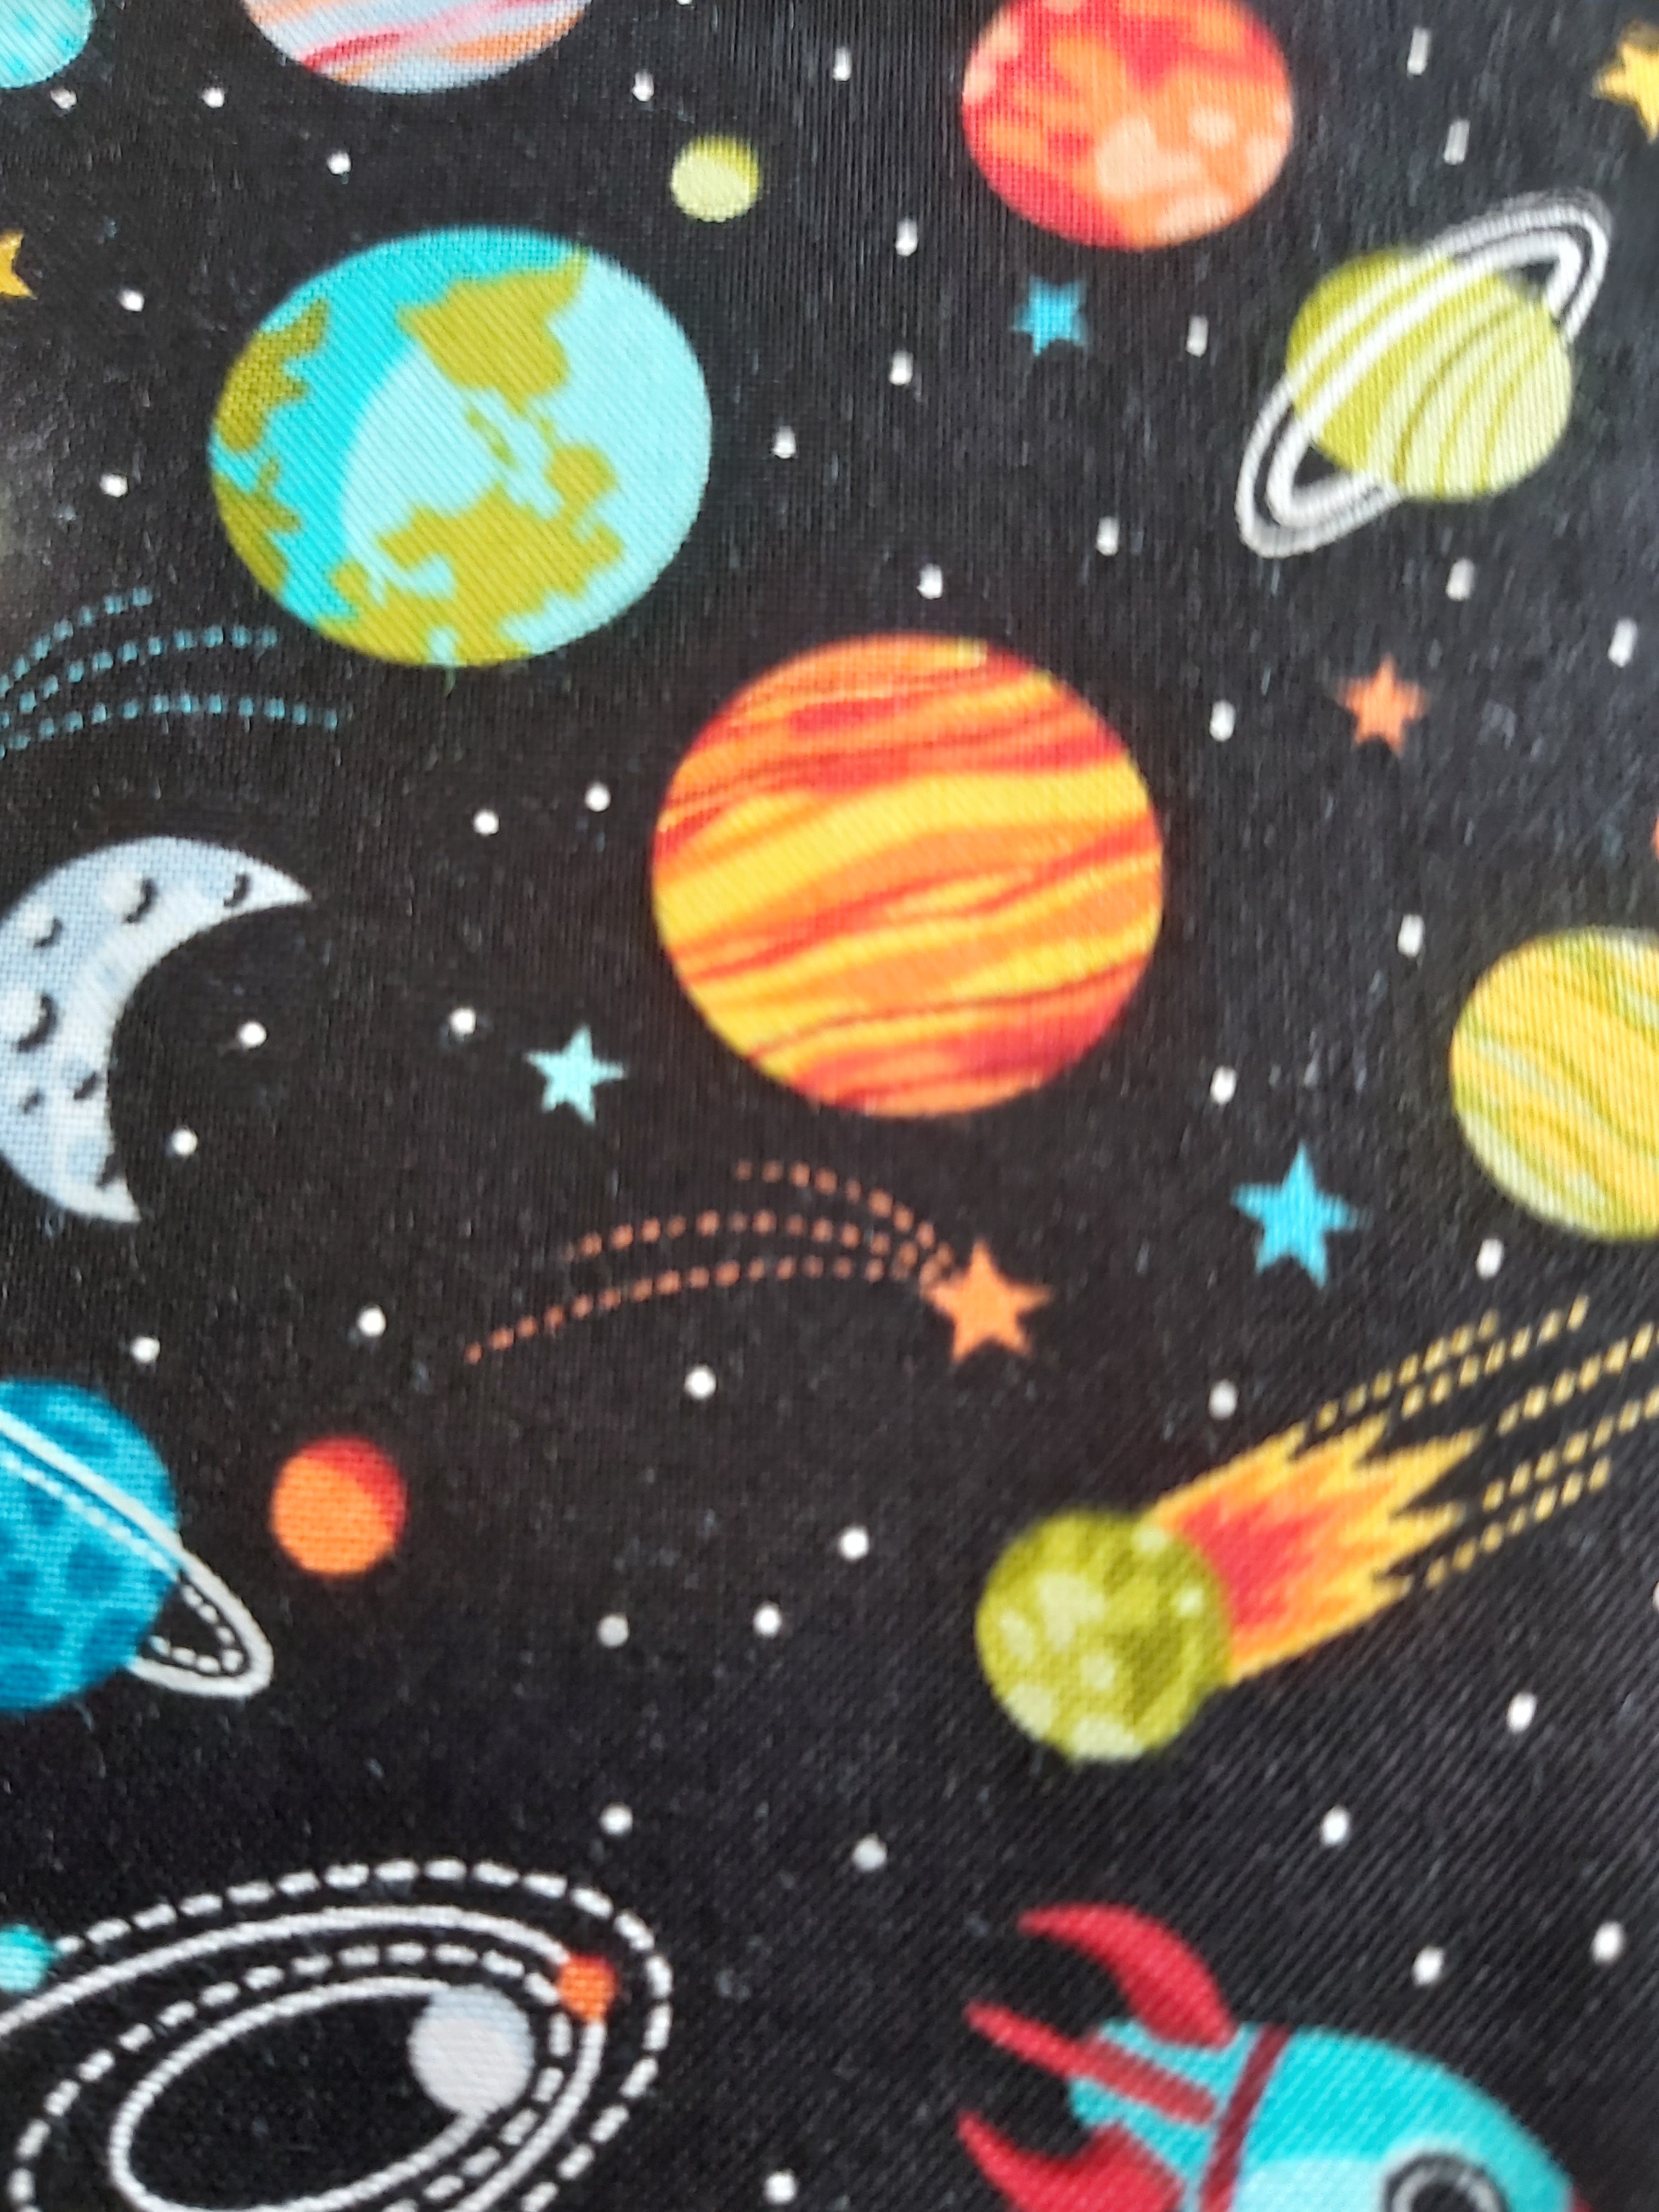 MKW OUTER SPACE 2270X